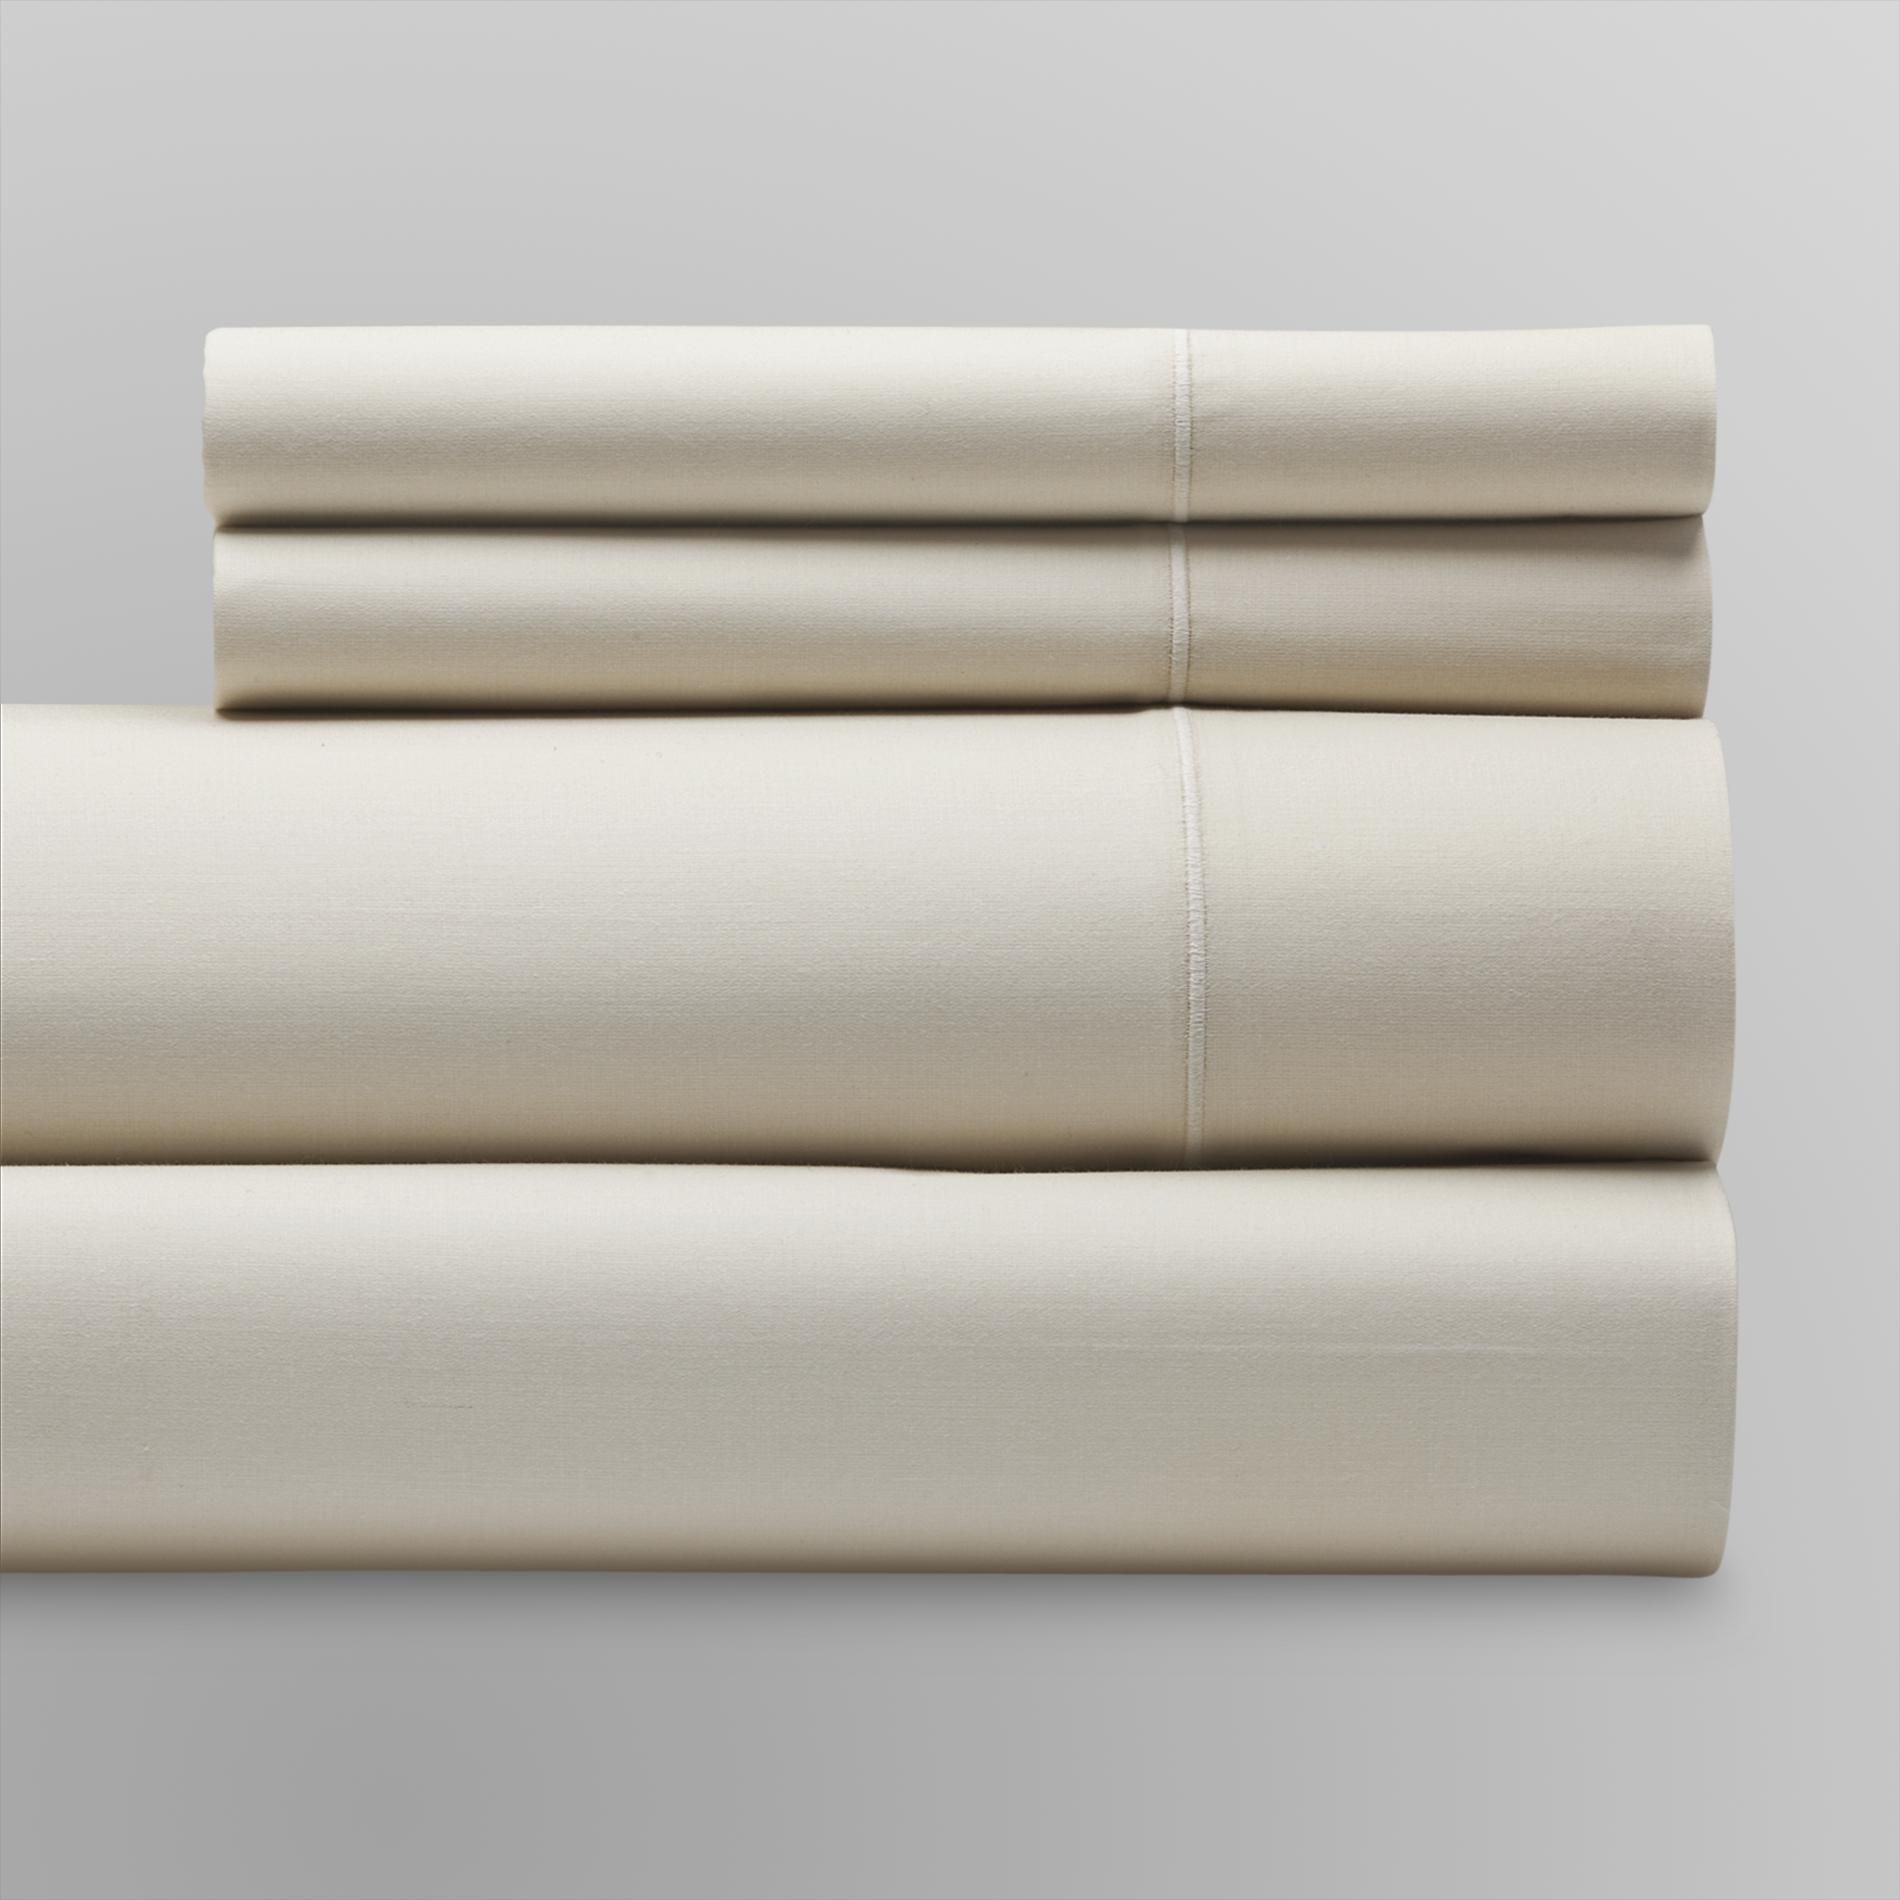 Flexi-Fit Sheet Set - 400 Thread Count White